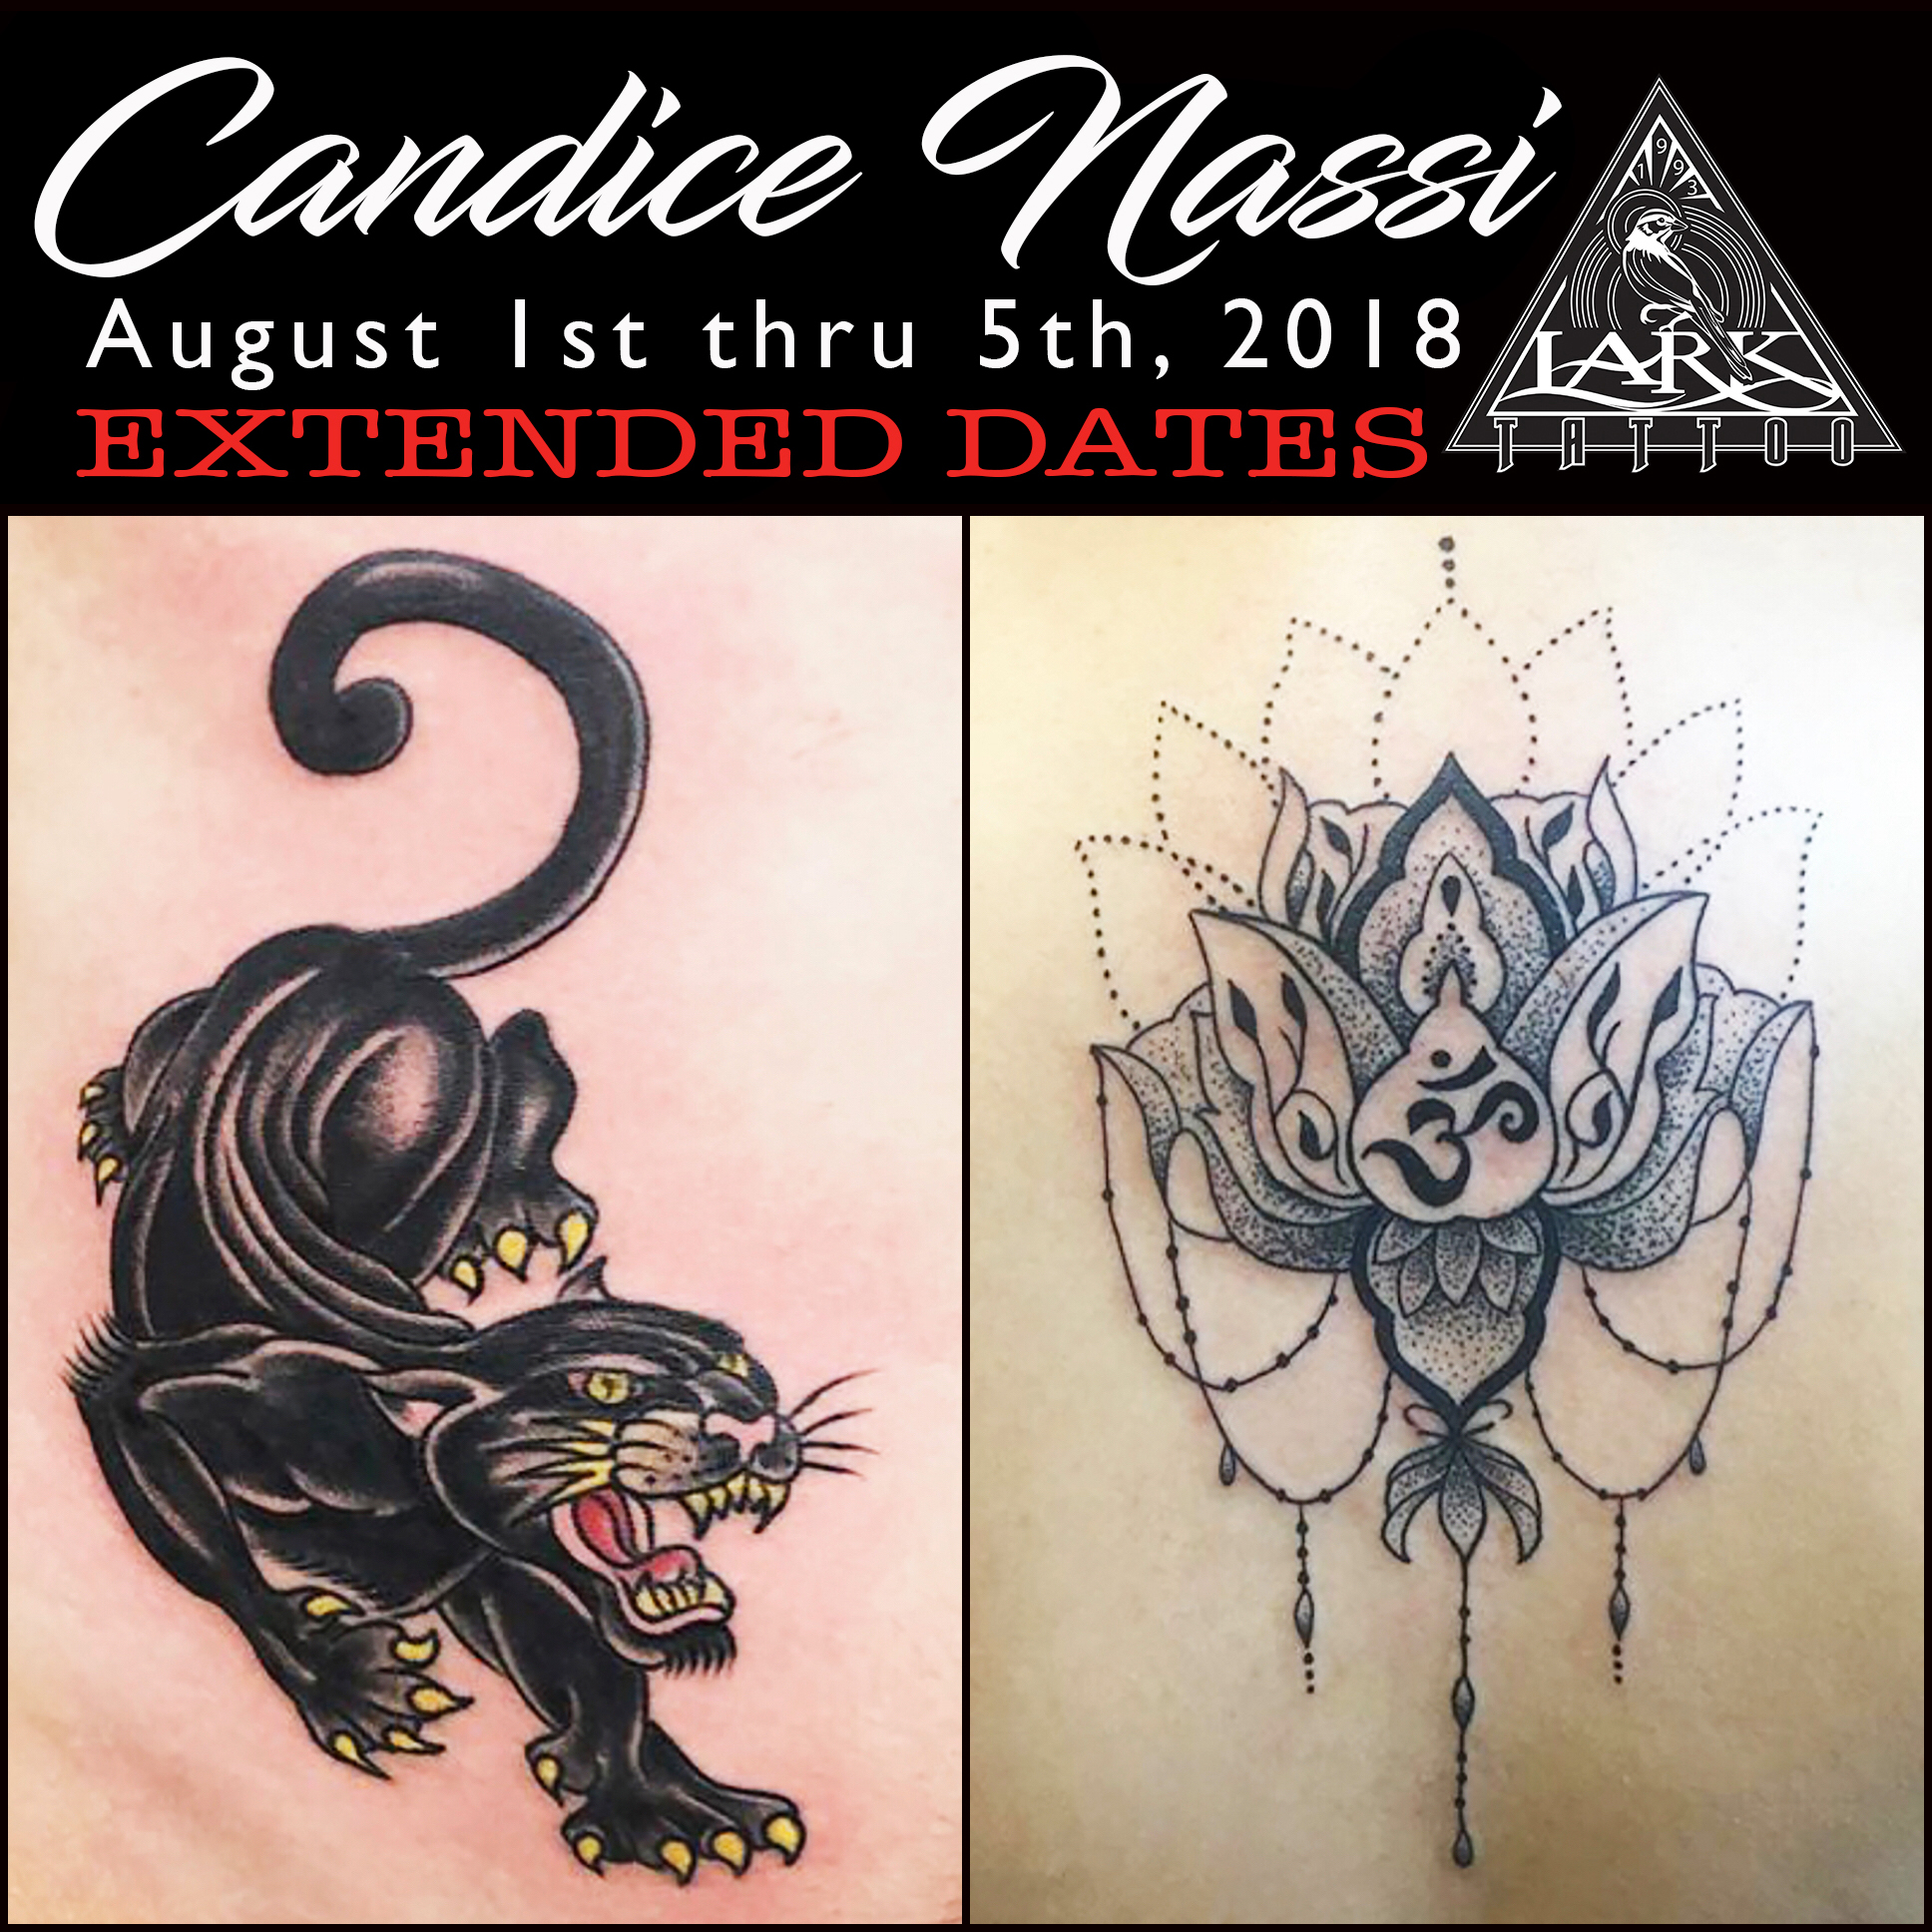 #mandala #mandalatattoo #chandalere #chandaleretattoo #stipple #stippletattoo #bng #bngtattoo #dotwork #dotworktattoo #ohm #ohmtattoo #traditionaltattoo #traditionalcolortattoo #colortattoo #panther #panthertattoo #tattoo #tattoos #larktattoo